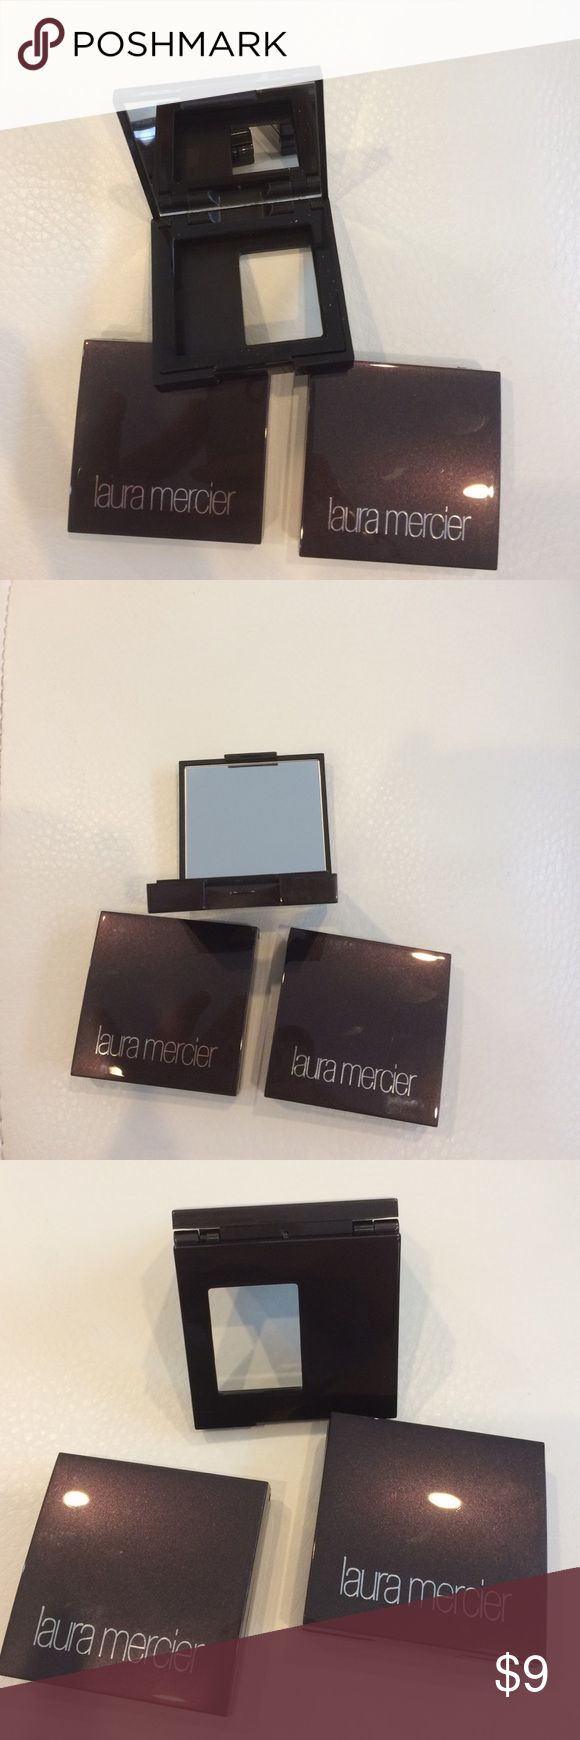 3 Laura Mercier eyeshadow compacts 3 Laura Mercier mirrored eyeshadow compacts. Laura Mercier Makeup